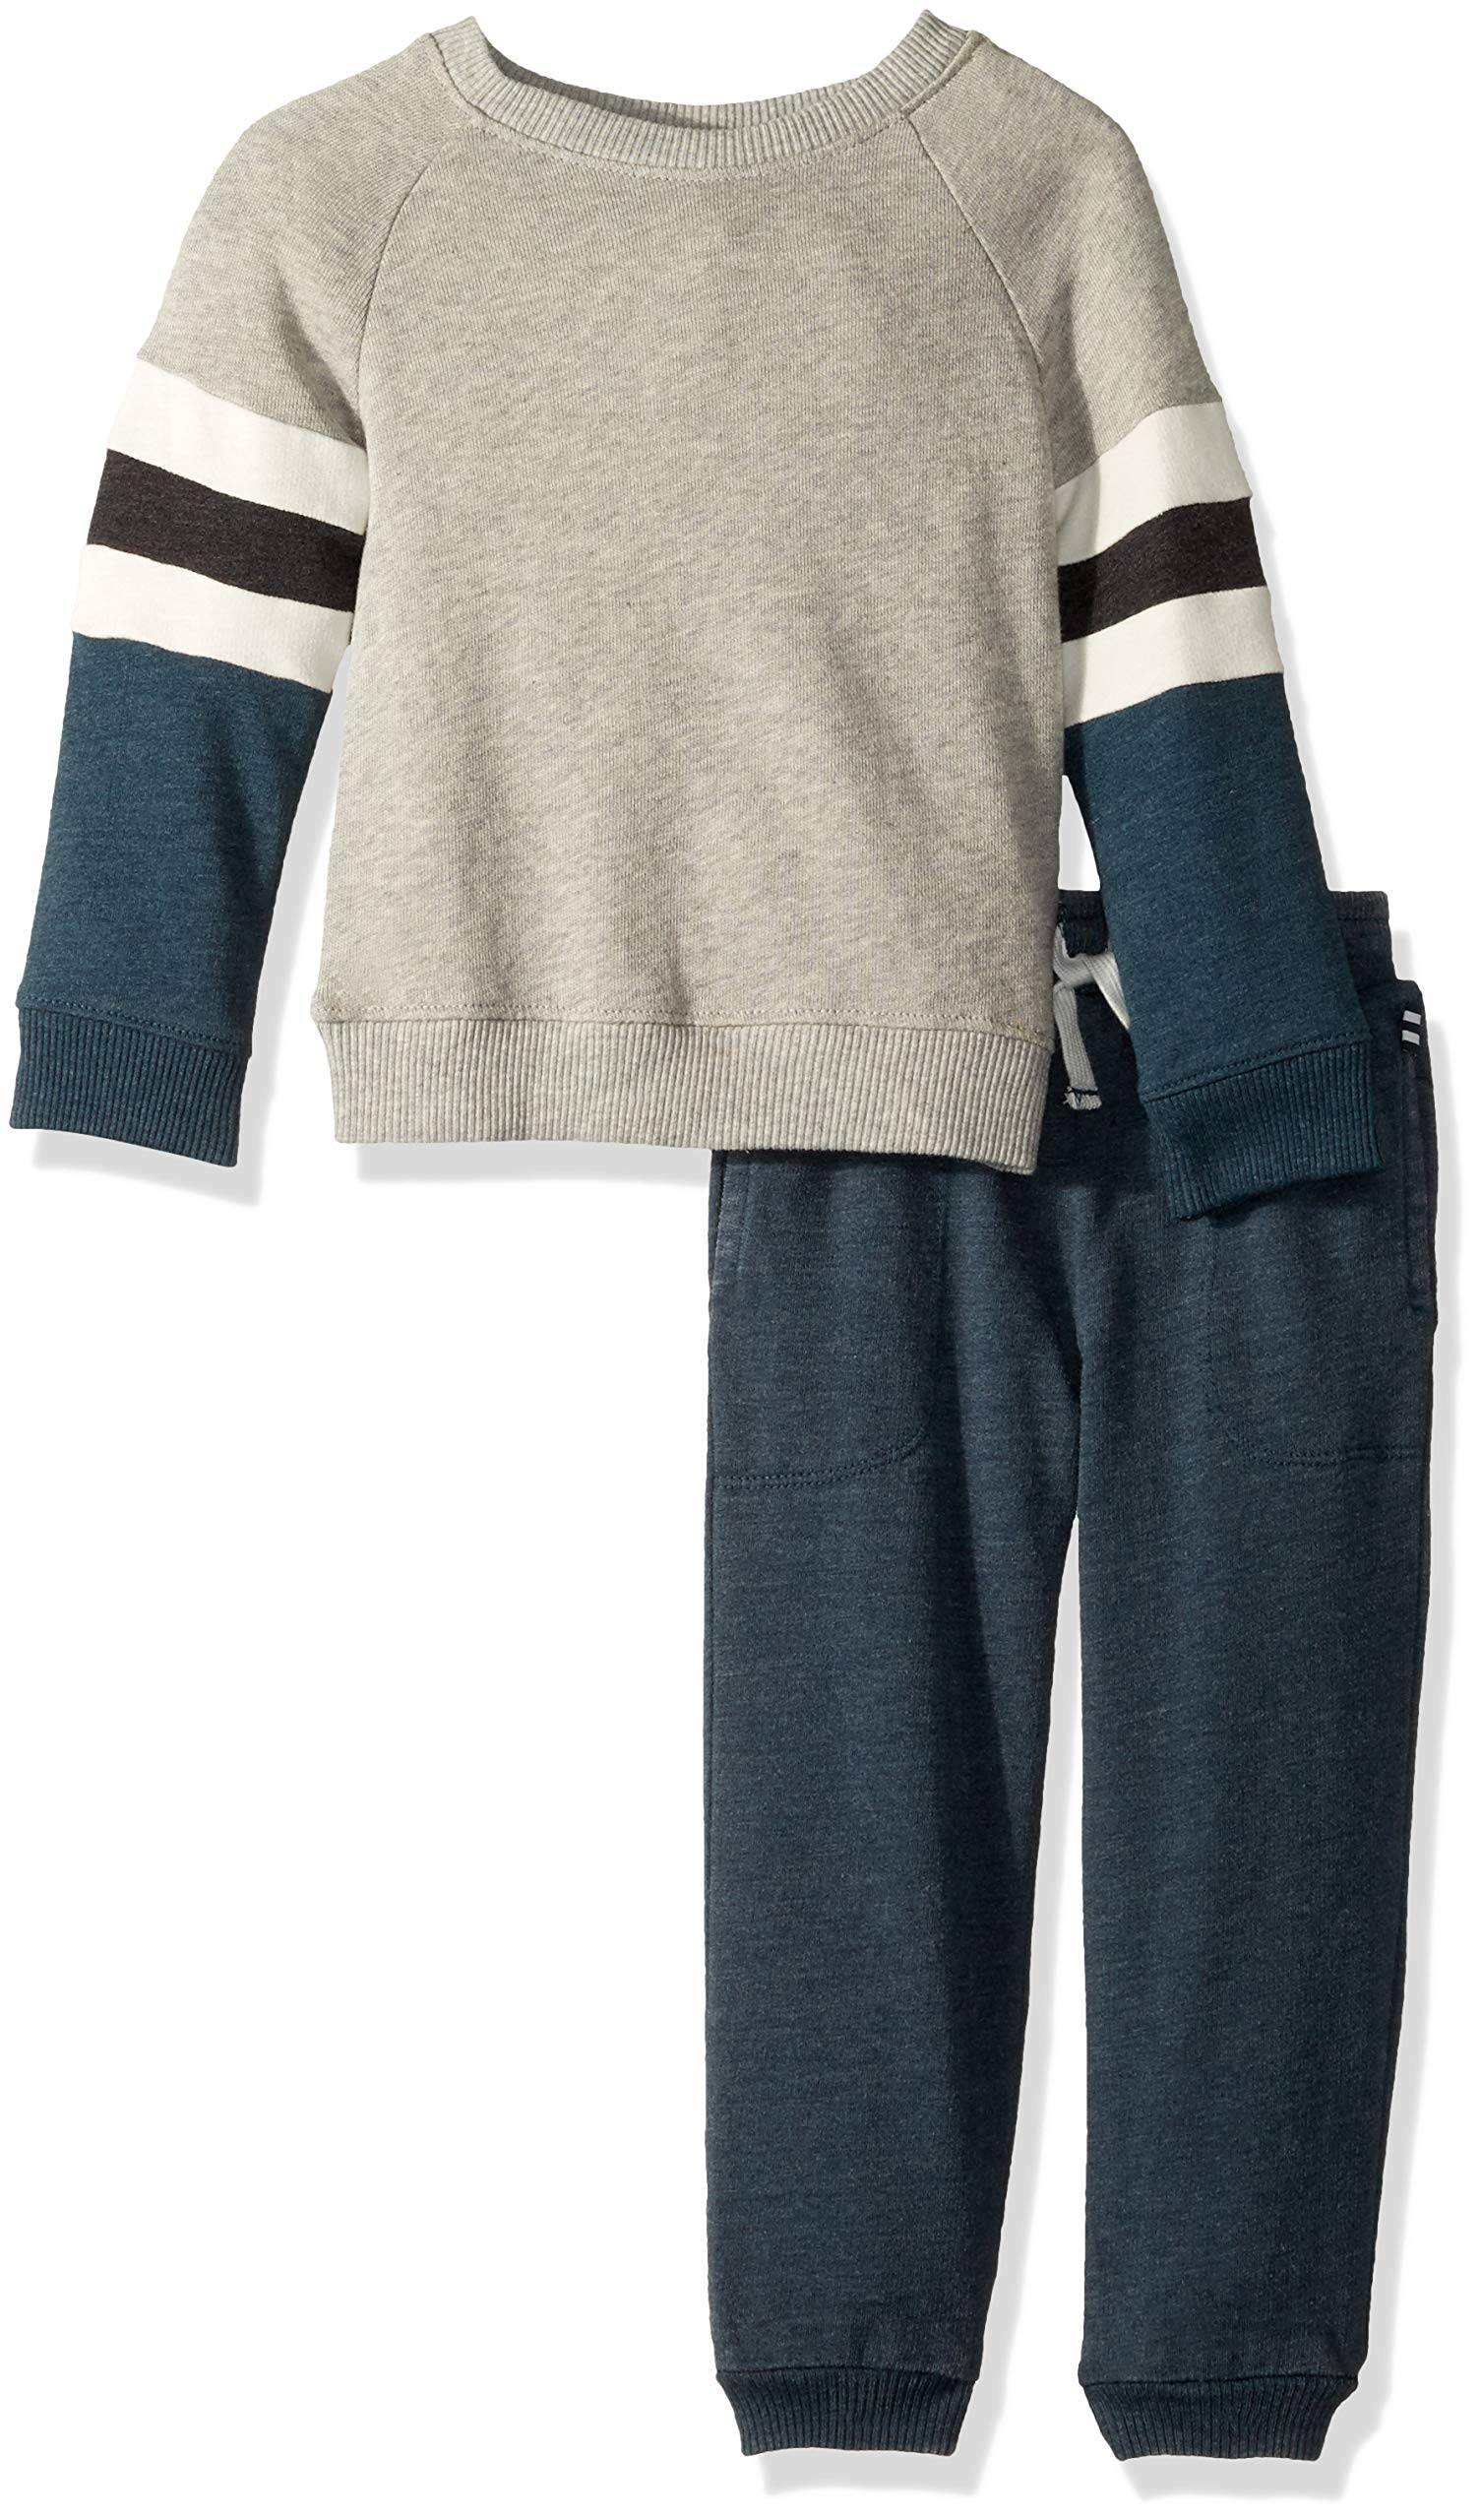 Splendid Toddler Boys' Kids and Baby Long Sleeve Top and Bottom 2 Piece Set, Light Grey Heather 2T